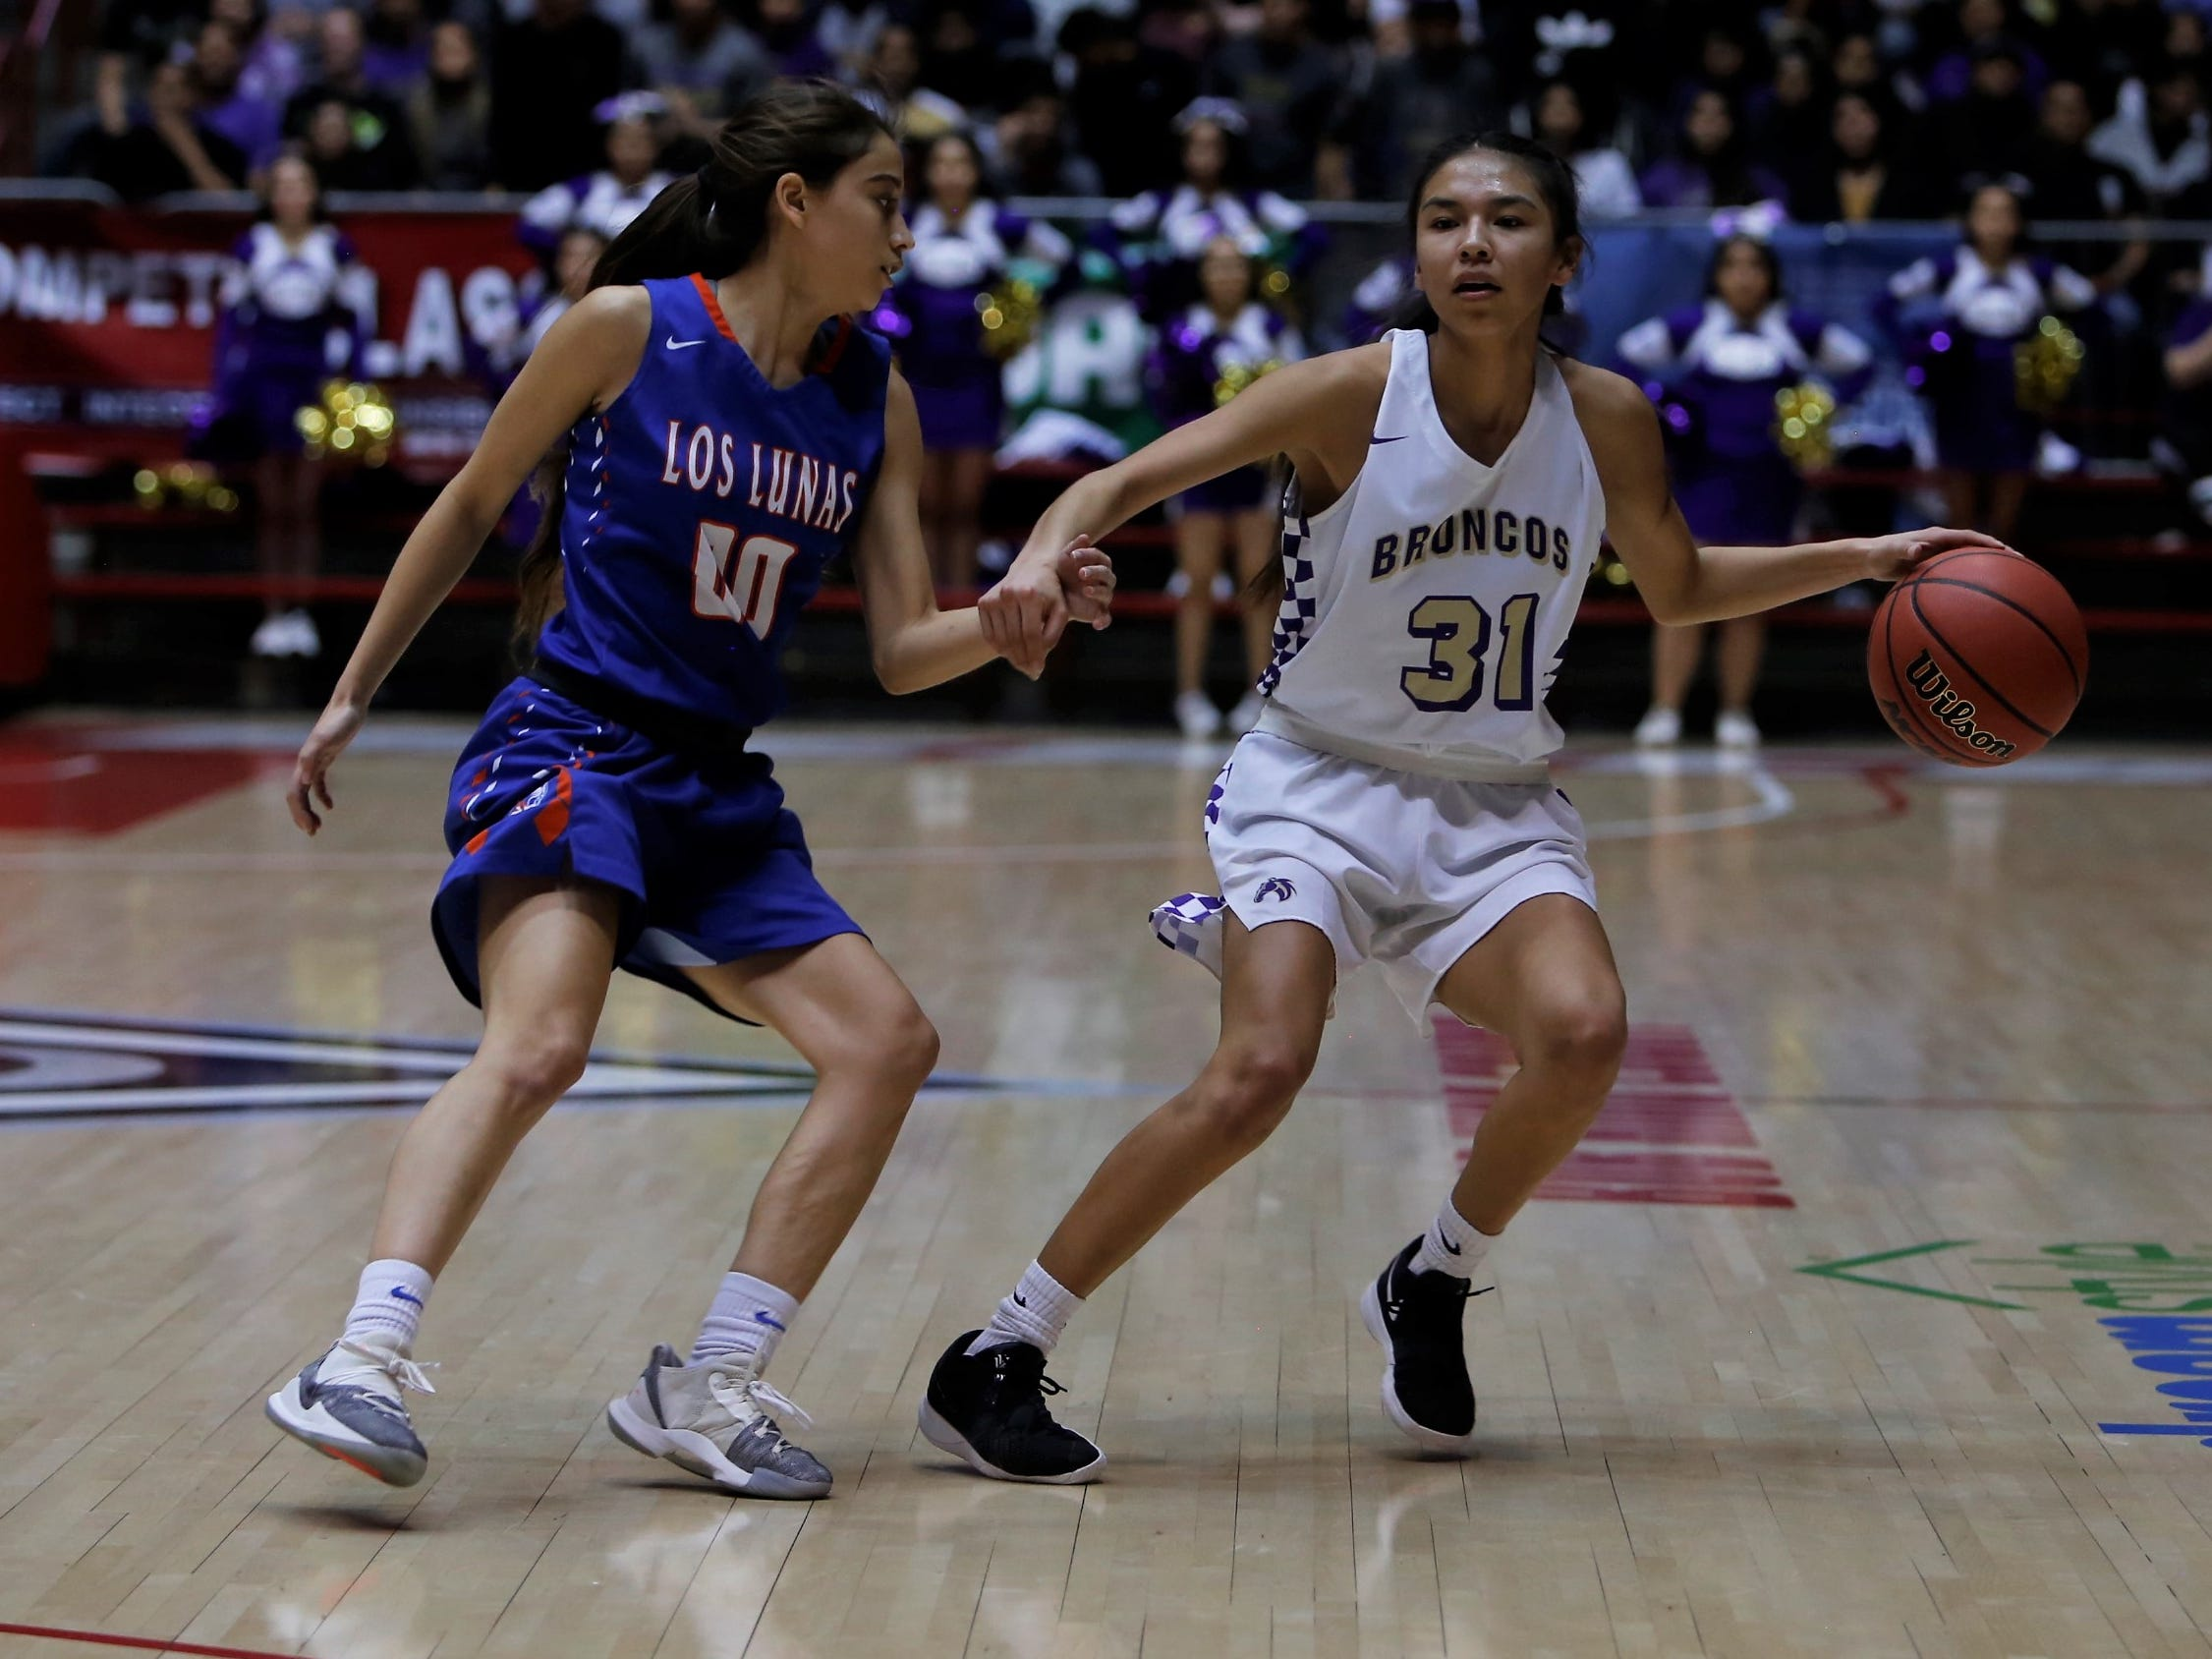 Kirtland Central's Tiajhae Nez fends off Los Lunas' Jaci Aragon during Friday's 4A state championship game at Dreamstyle Arena in Albuquerque.